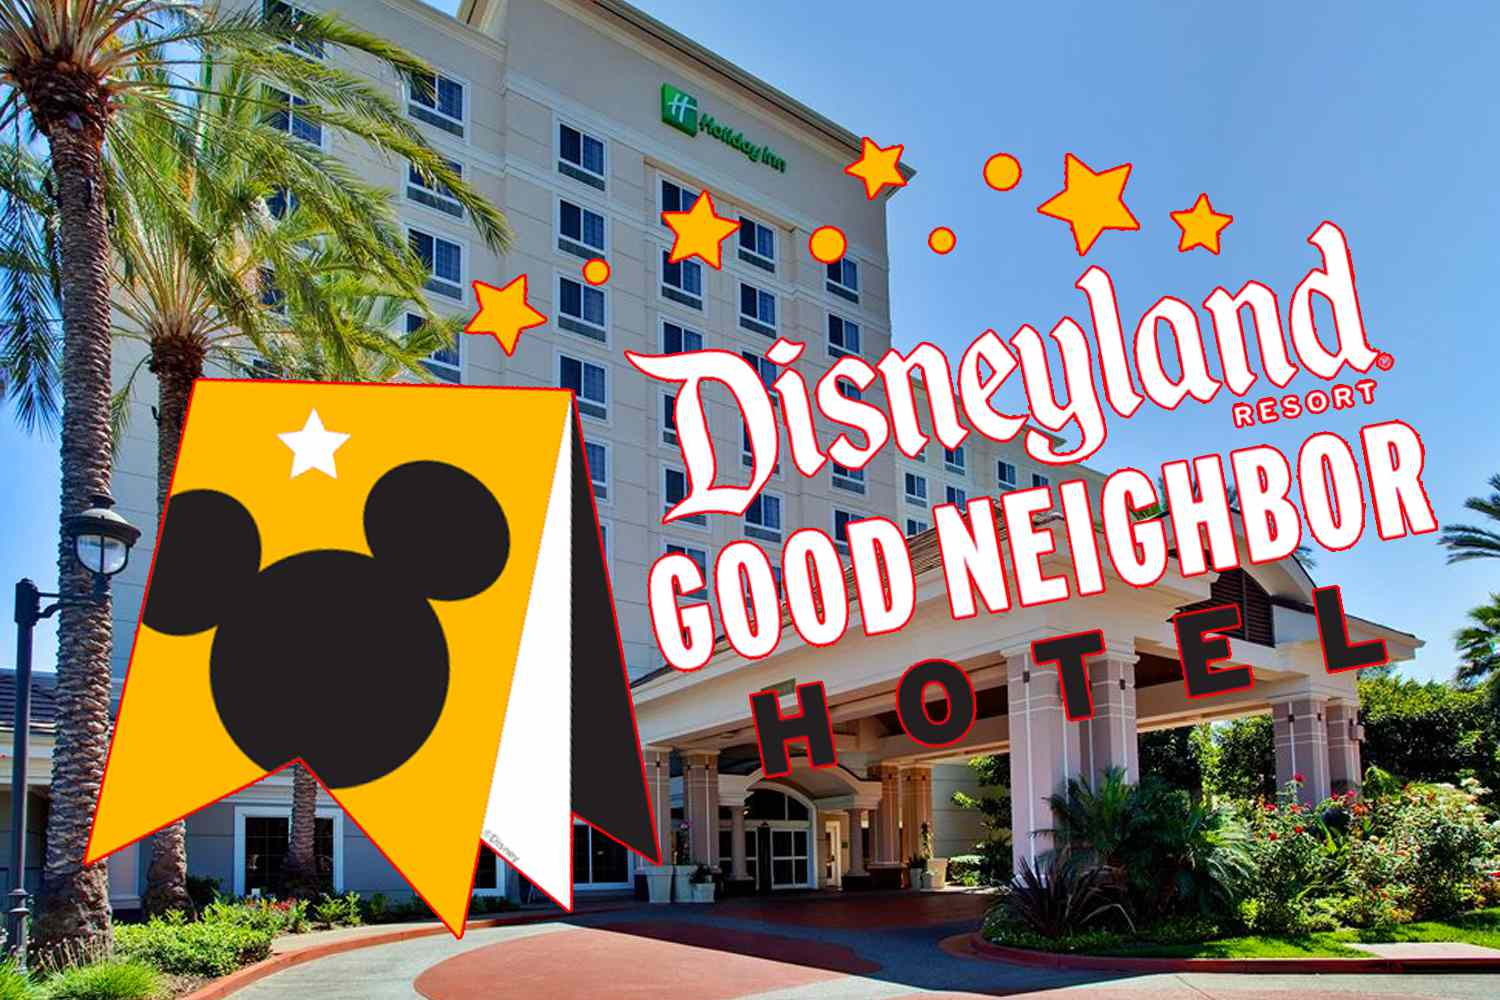 What Makes a Hotel One of Disneyland's Good Neighbors?